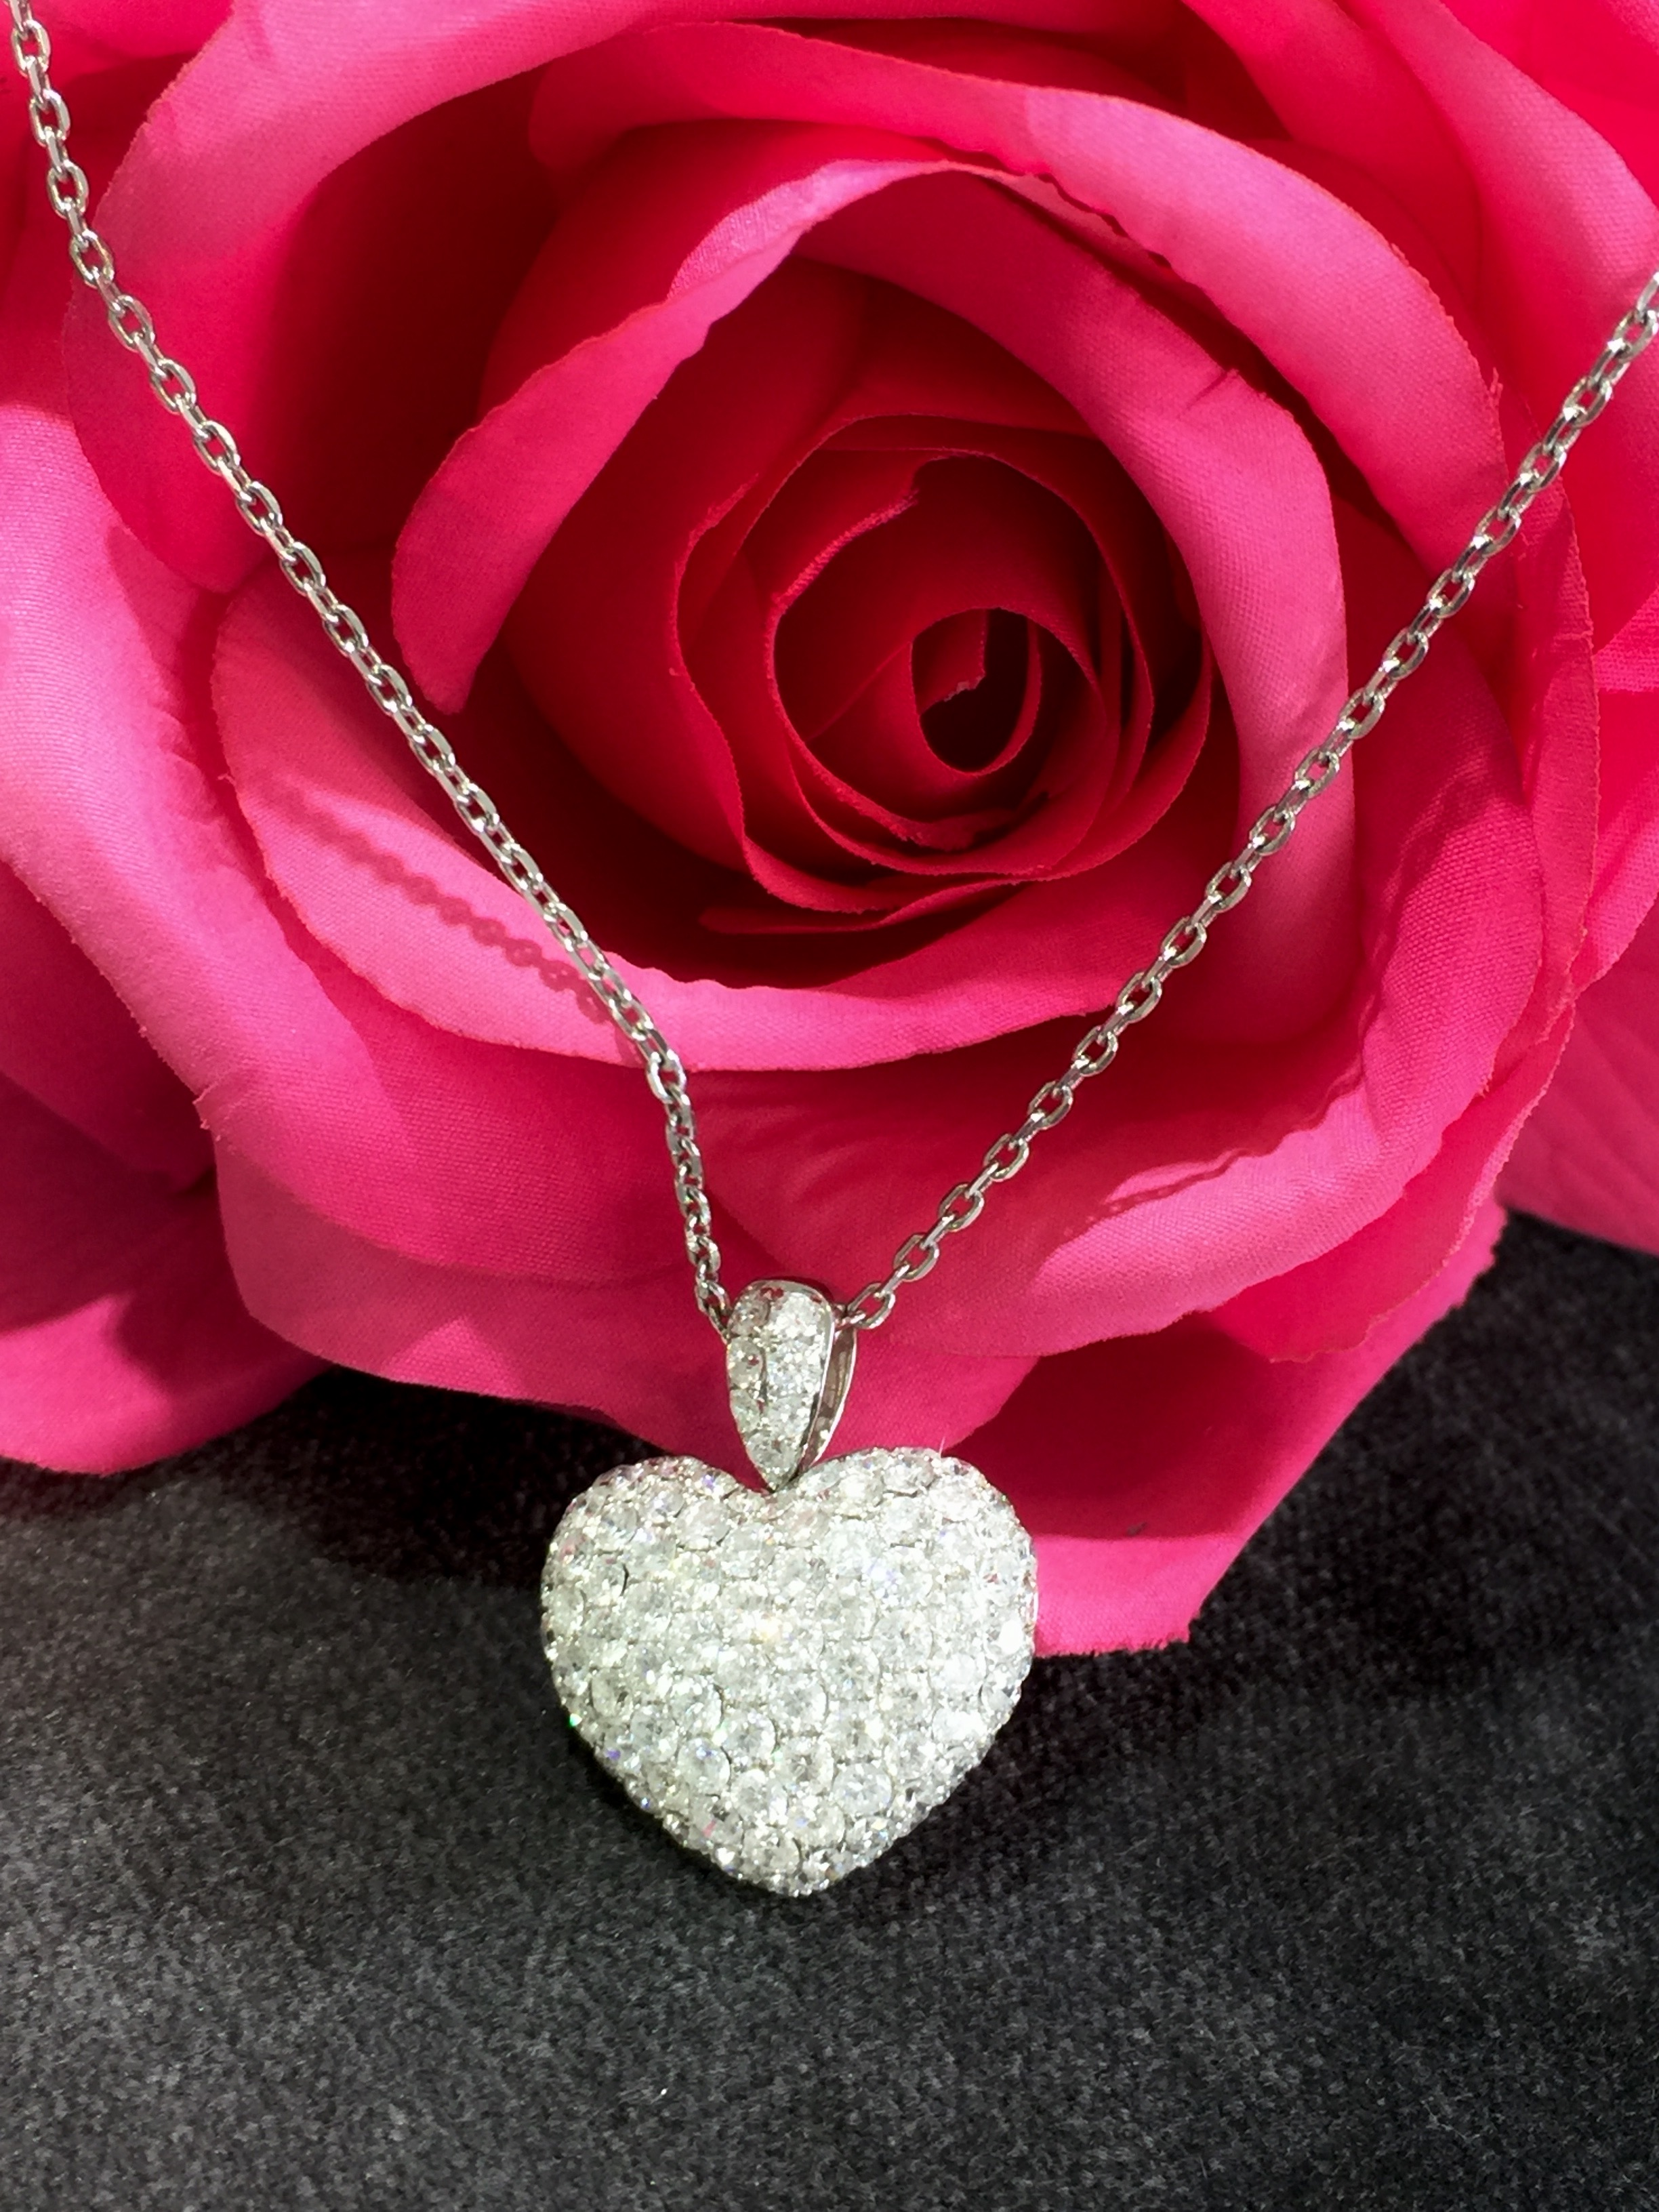 diamond_heart_pendant.jpg